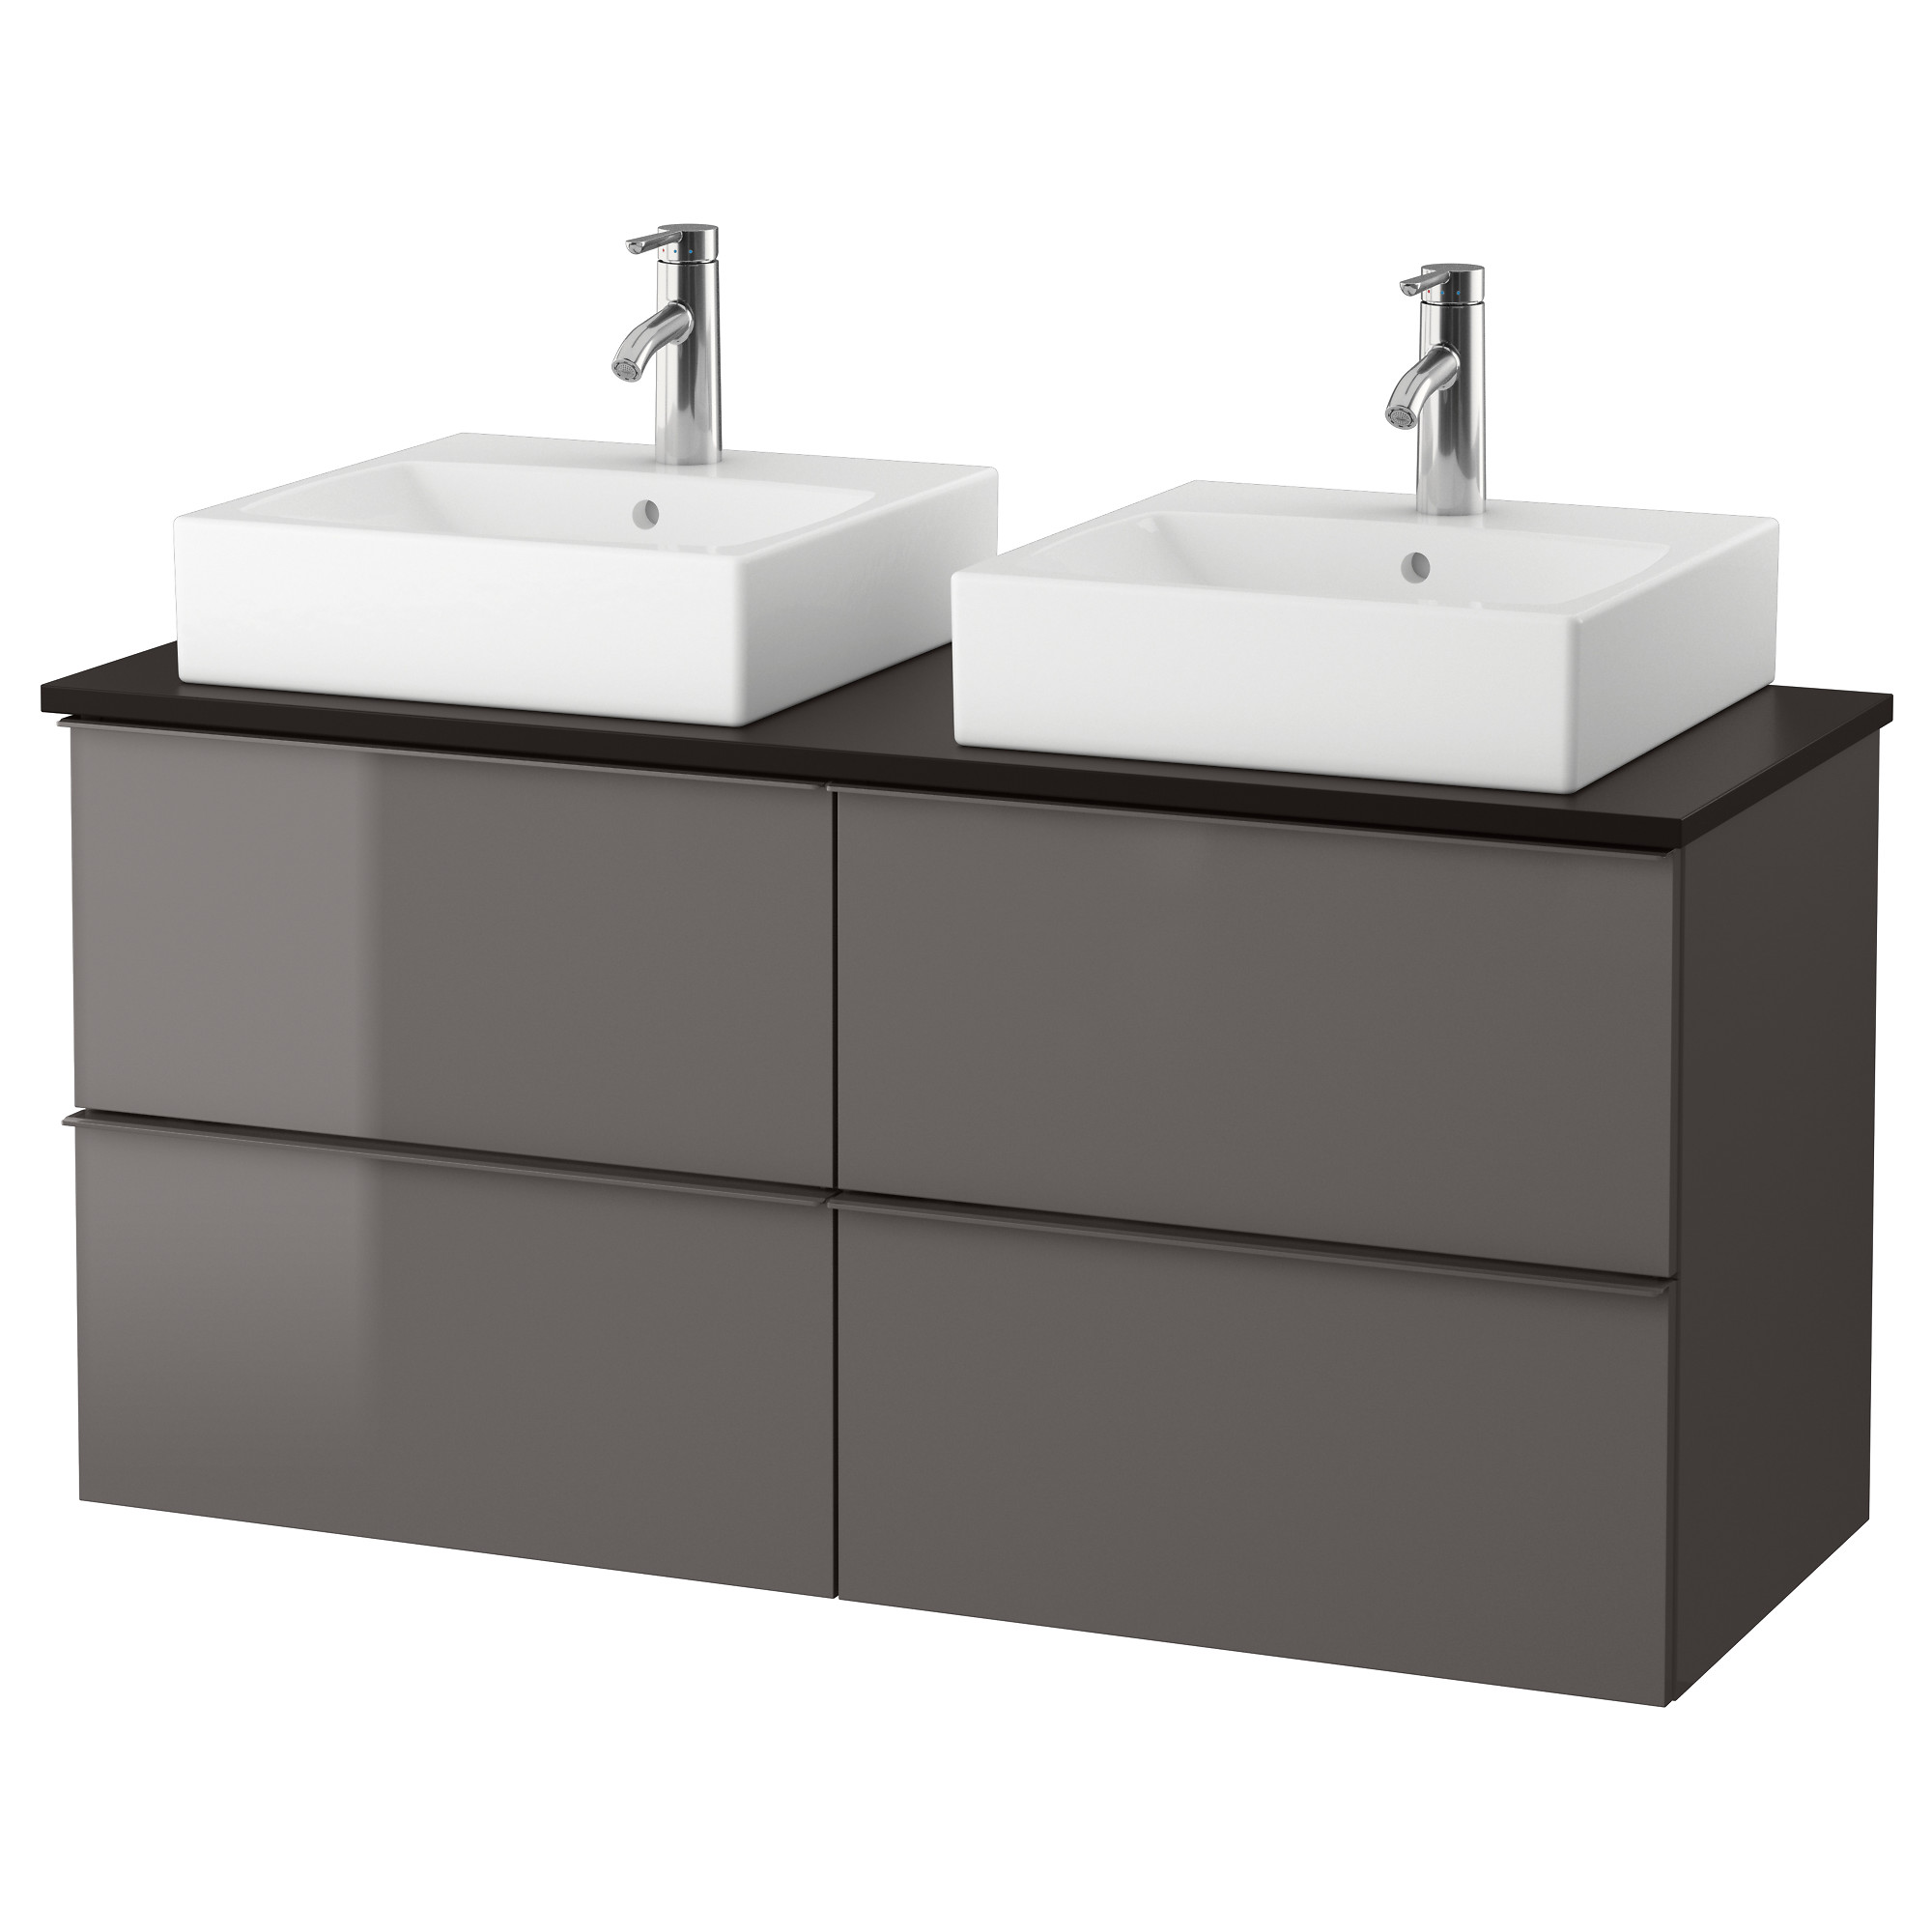 Sink and cabinet for bathroom weifeng furniture for Toilet sink cabinet